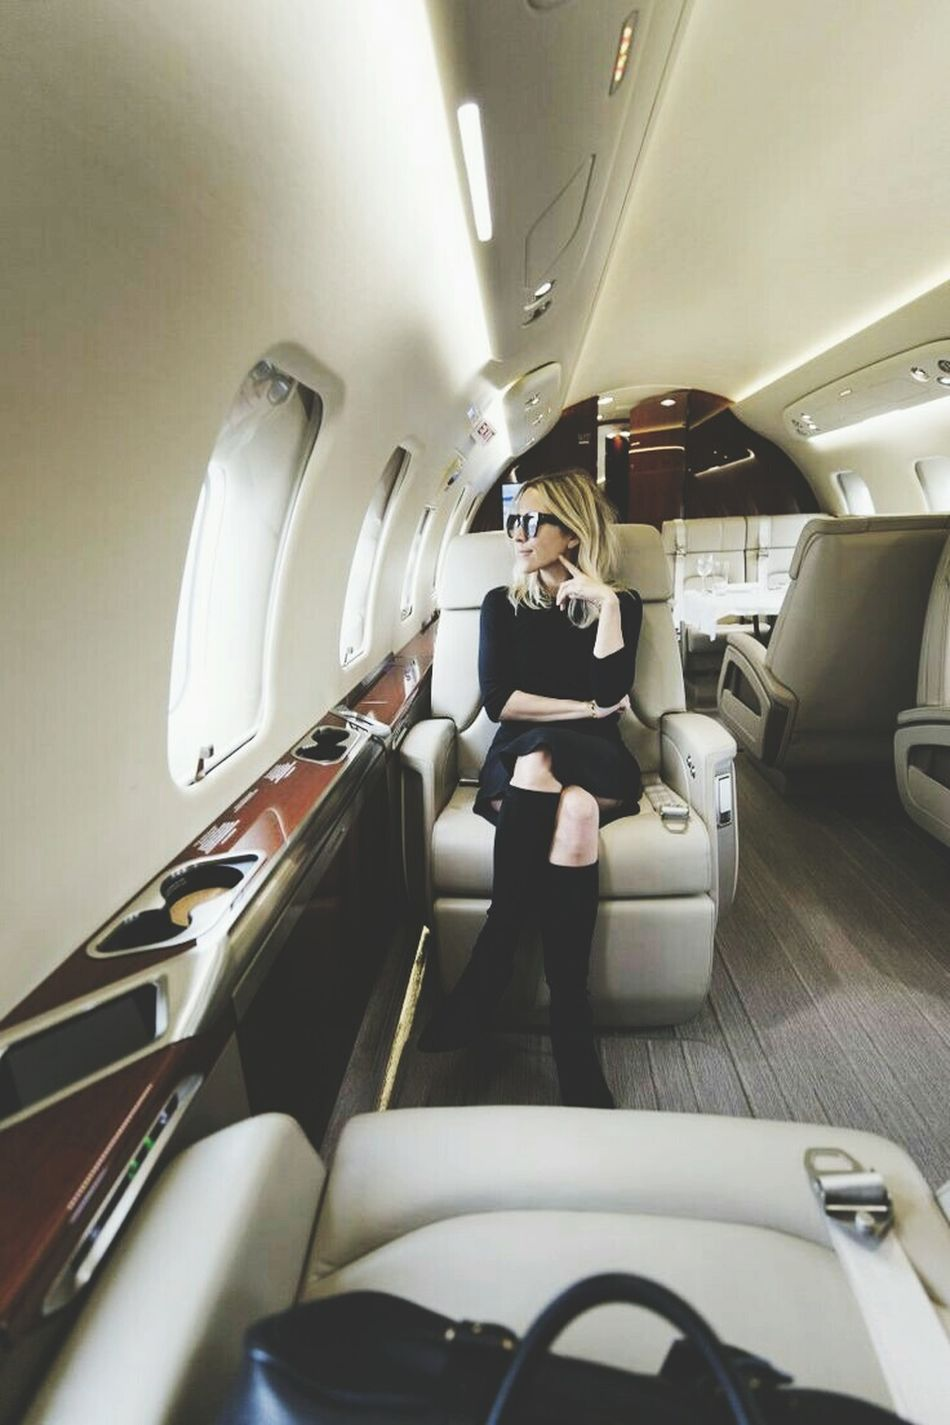 Because she wanted to see Key West - Airplane Travel Luxury Transportation One Woman Only Modern Private Airplane Educatedgirlsrock HAWKER 900XP Dinner Date Indoors  Business Beautiful People EyeEm Best Shots Women Only Women Beautiful People Business Finance And Industry One Person Illuminated People Adults Only Futuristic Aerospace Industry Working Adult